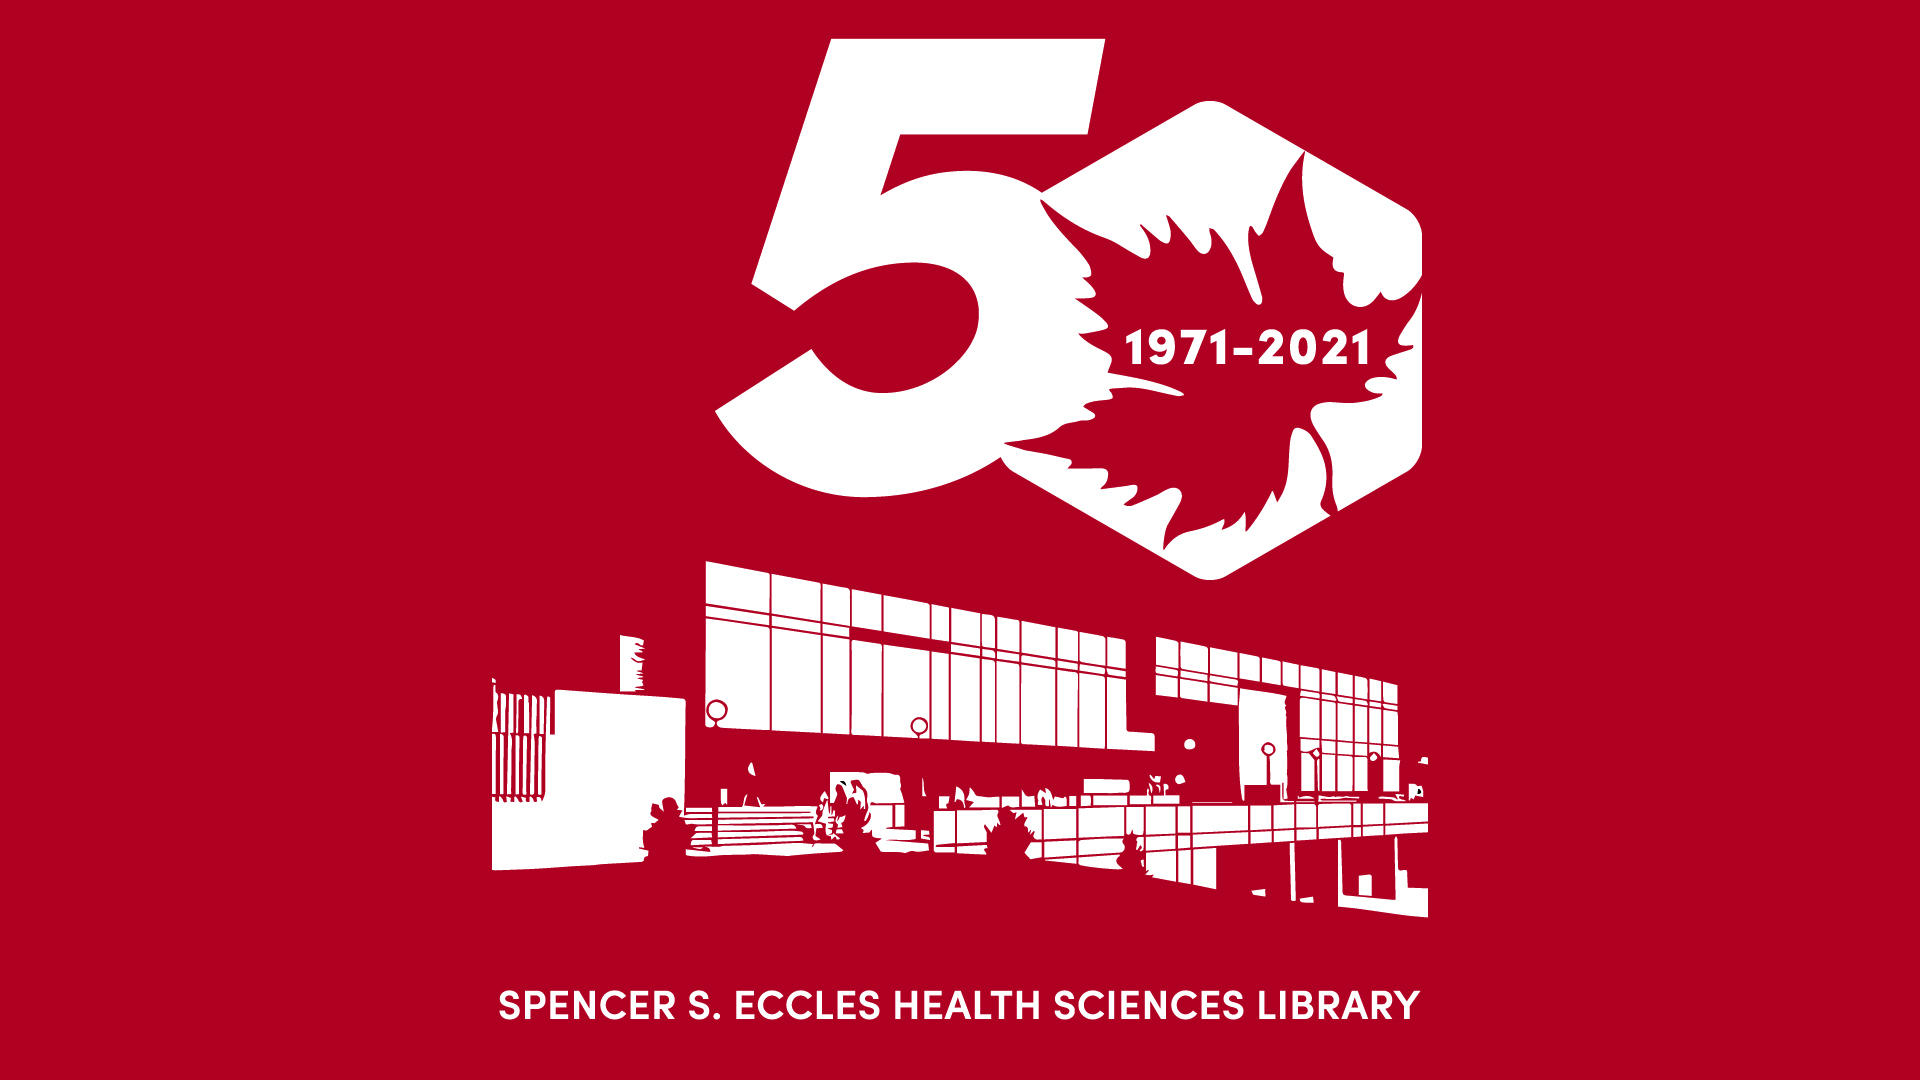 Spencer S. Eccles Health Sciences Library 50th Anniversary 1971-2021